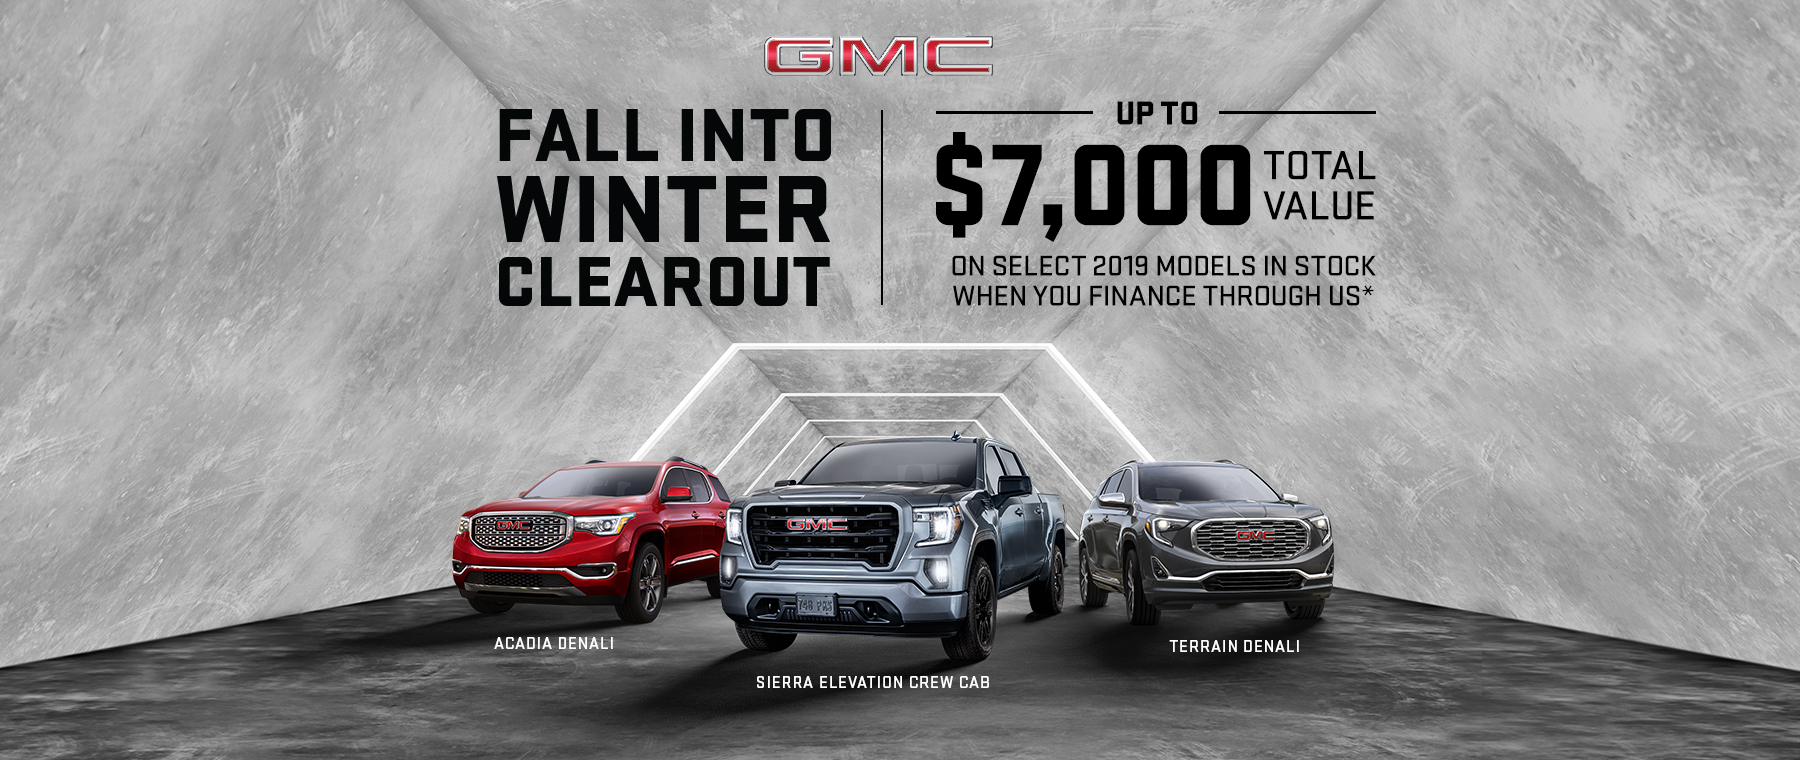 2019 GMC Multi Line - Fall Into Winter Clearout